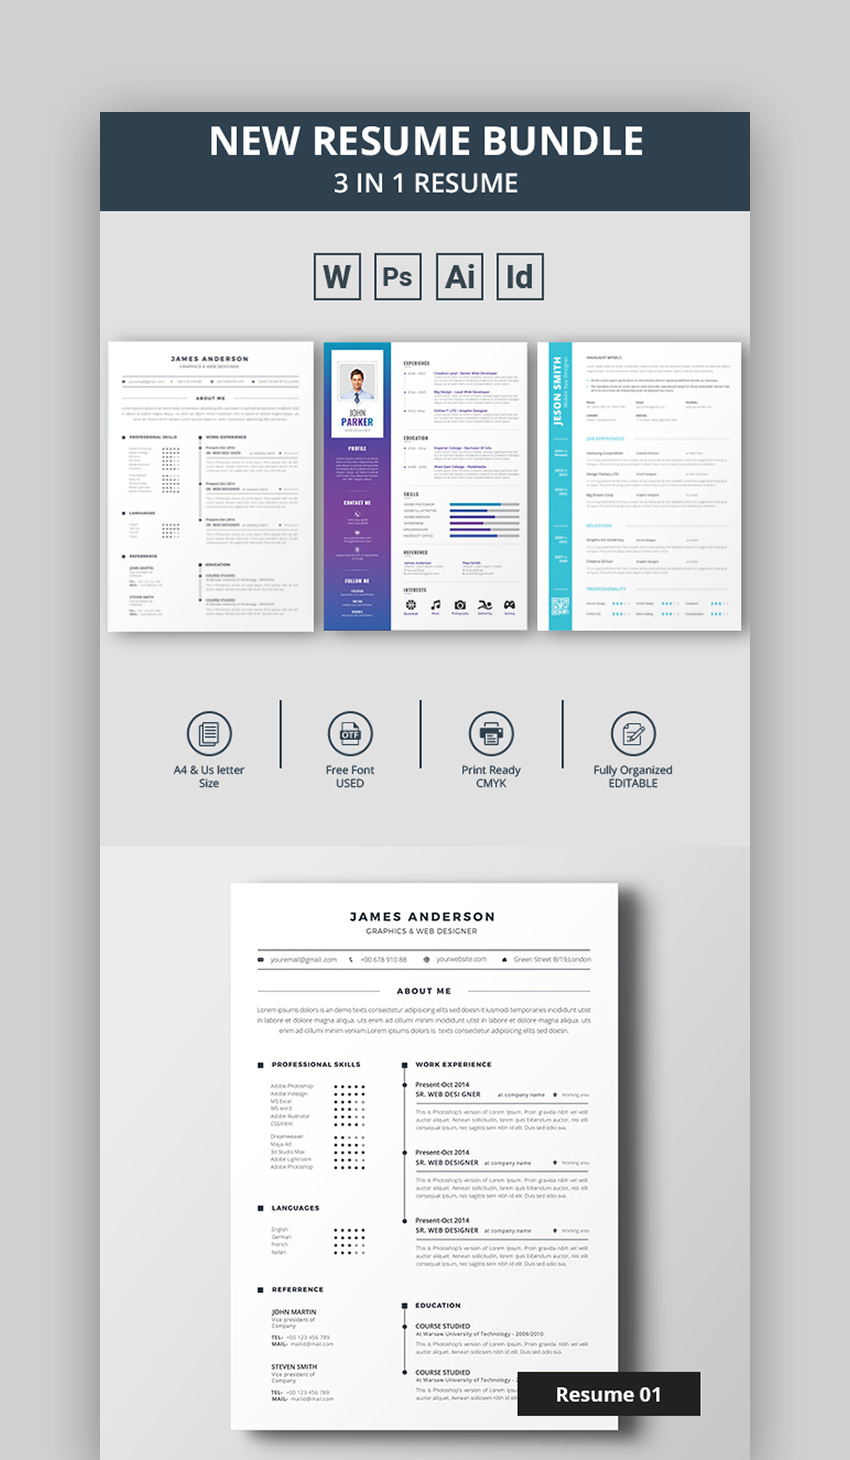 cool colorful resume cv templates to stand out creatively in professional colors topic Resume Professional Resume Colors